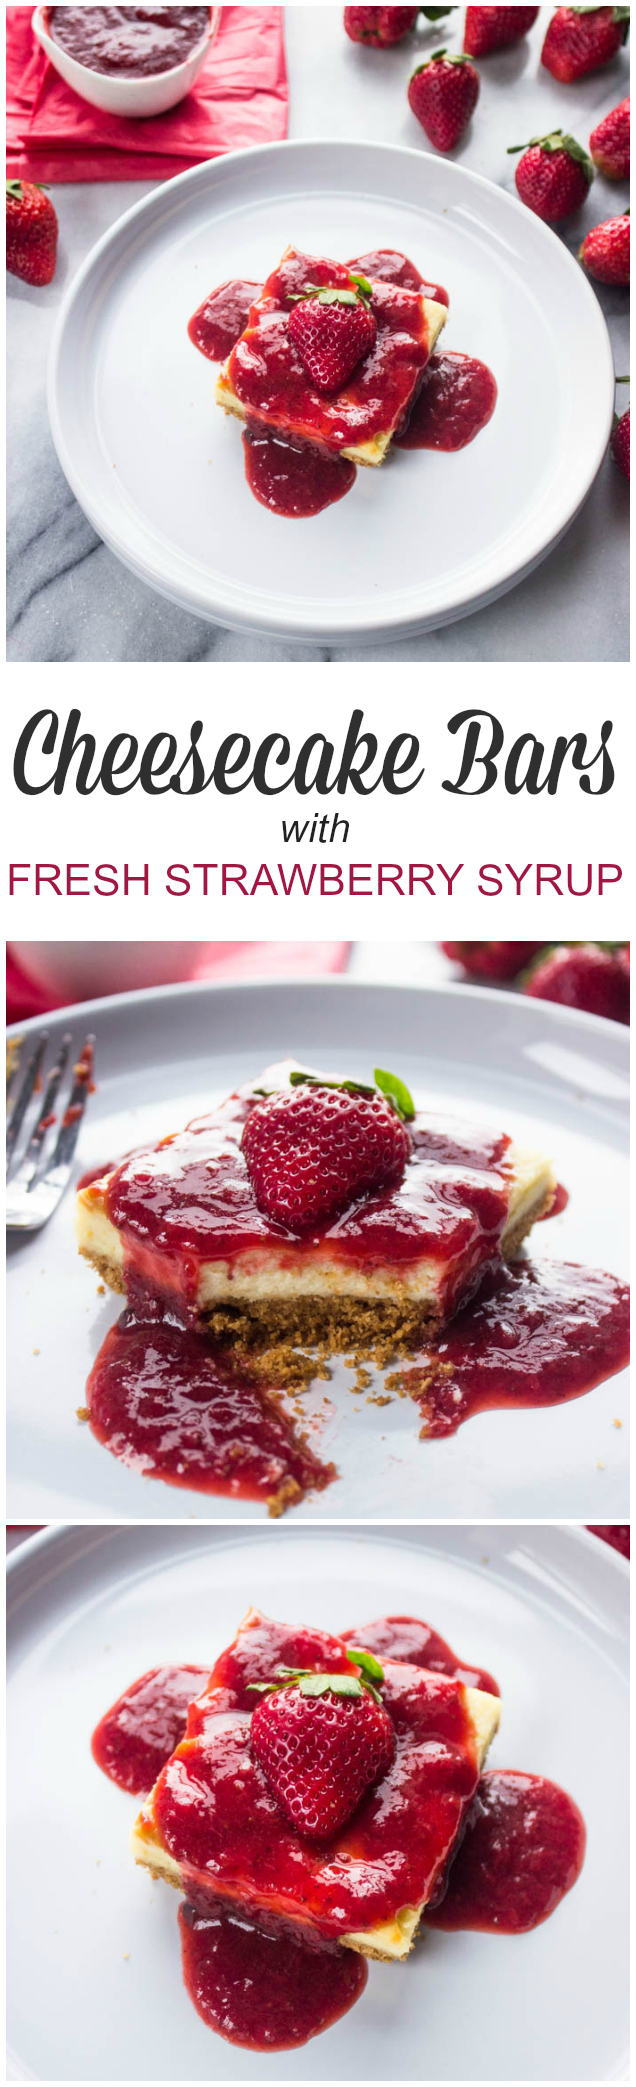 Cheesecake bars with Fresh Strawberry Syrup